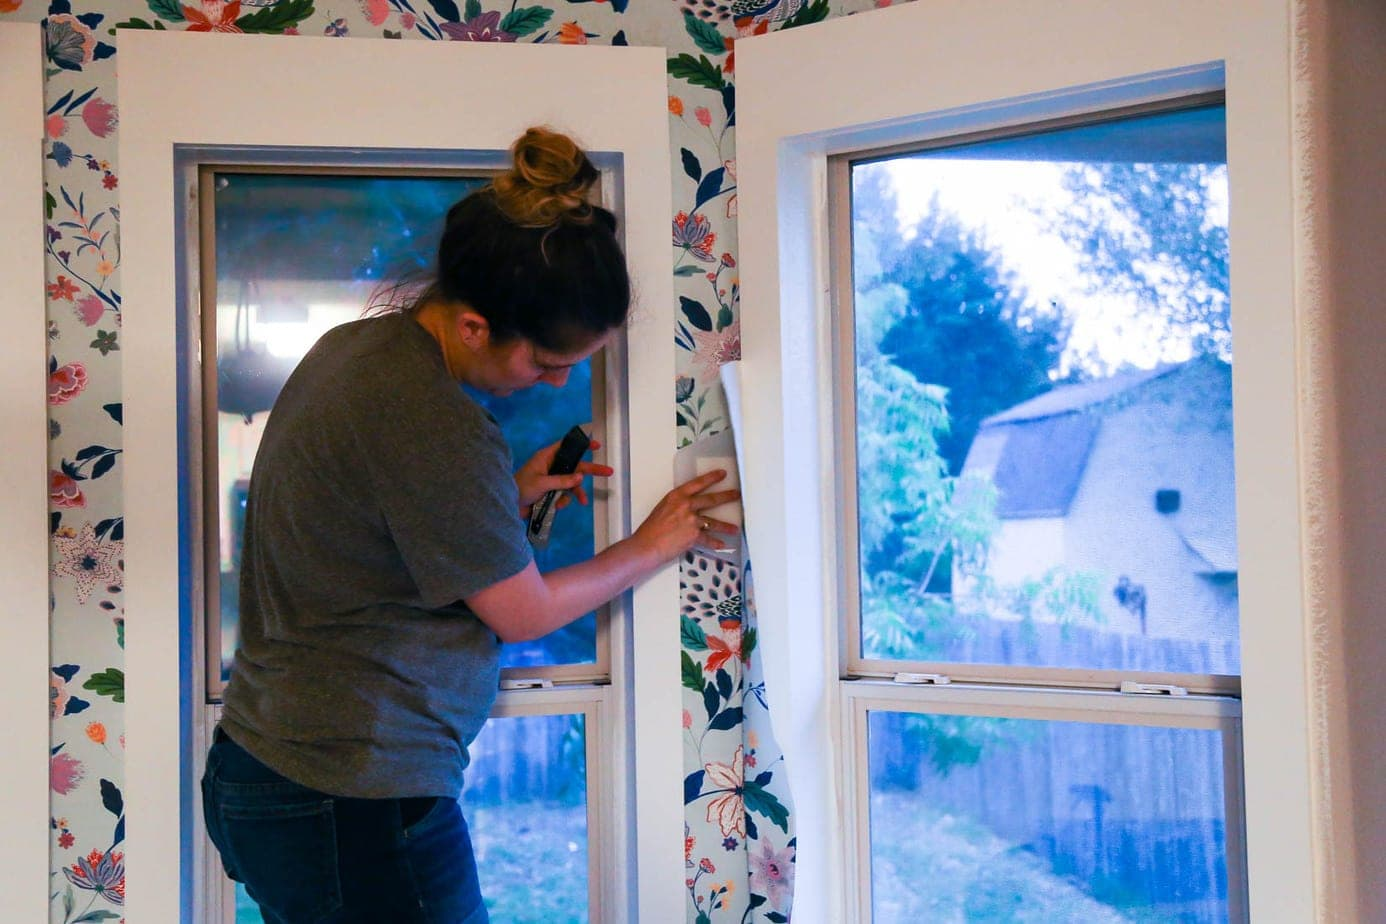 Installing wallpaper around a window